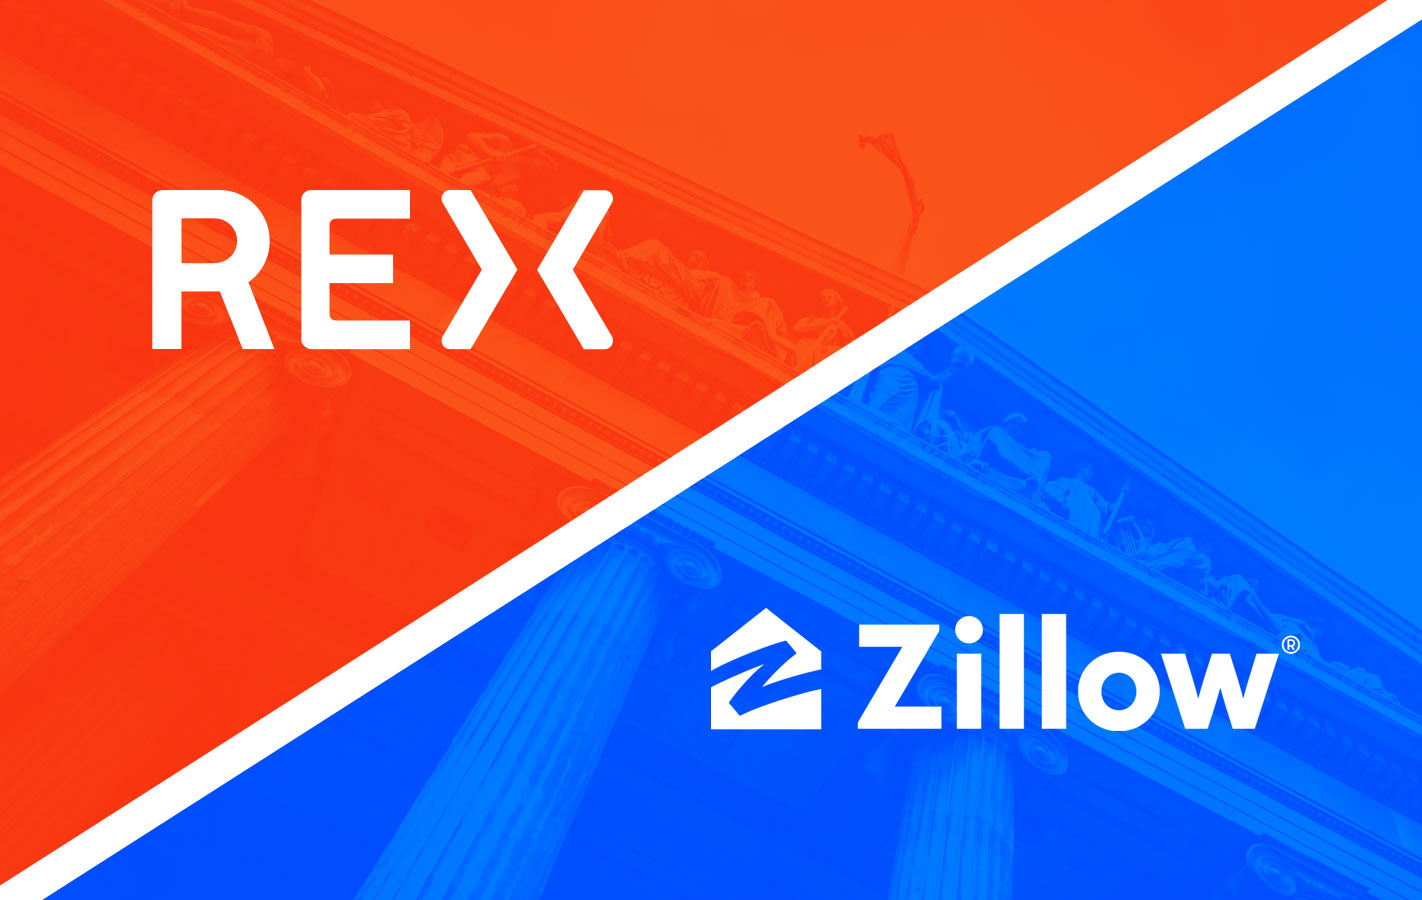 Rex sues Zillow